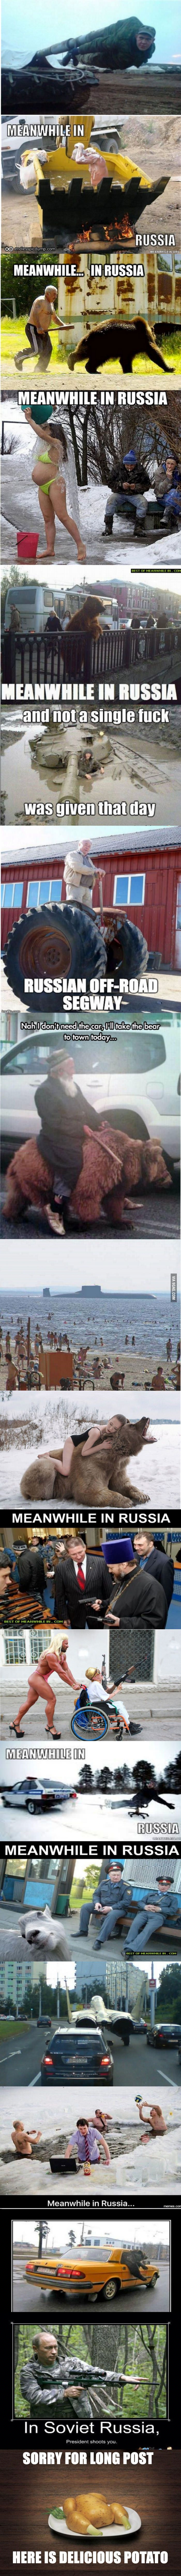 Meanwhile in Russia compilation